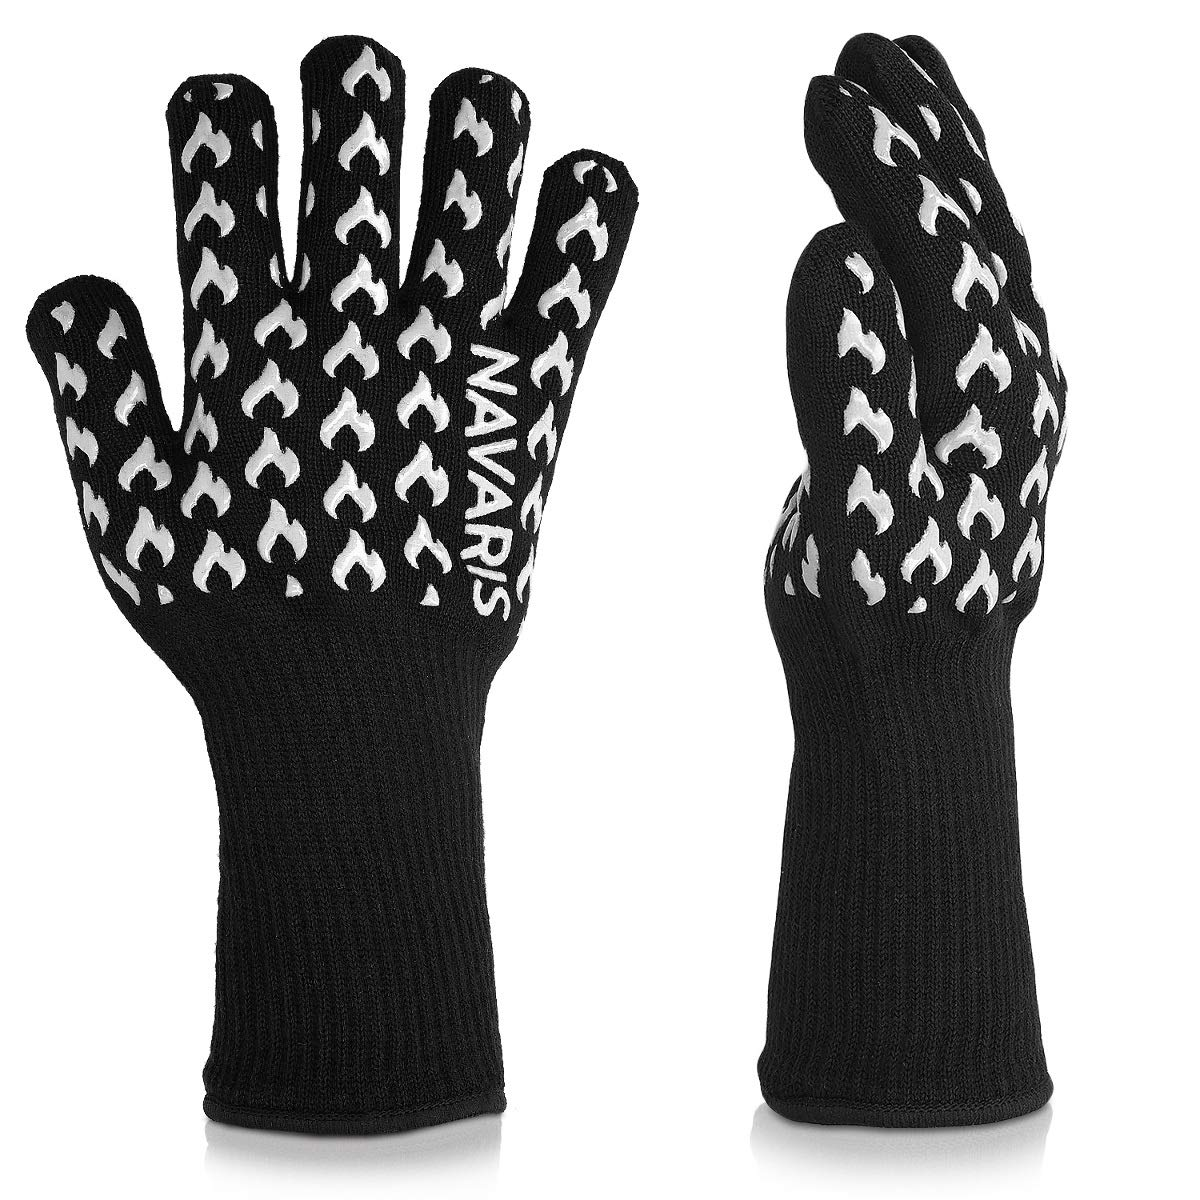 Navaris Extreme Heat Resistant Grill Gloves - BBQ Gloves for Cooking, Grilling, Baking, Smoking up to 932°F / 500°C - 1 Pair of Kitchen Oven Mitts